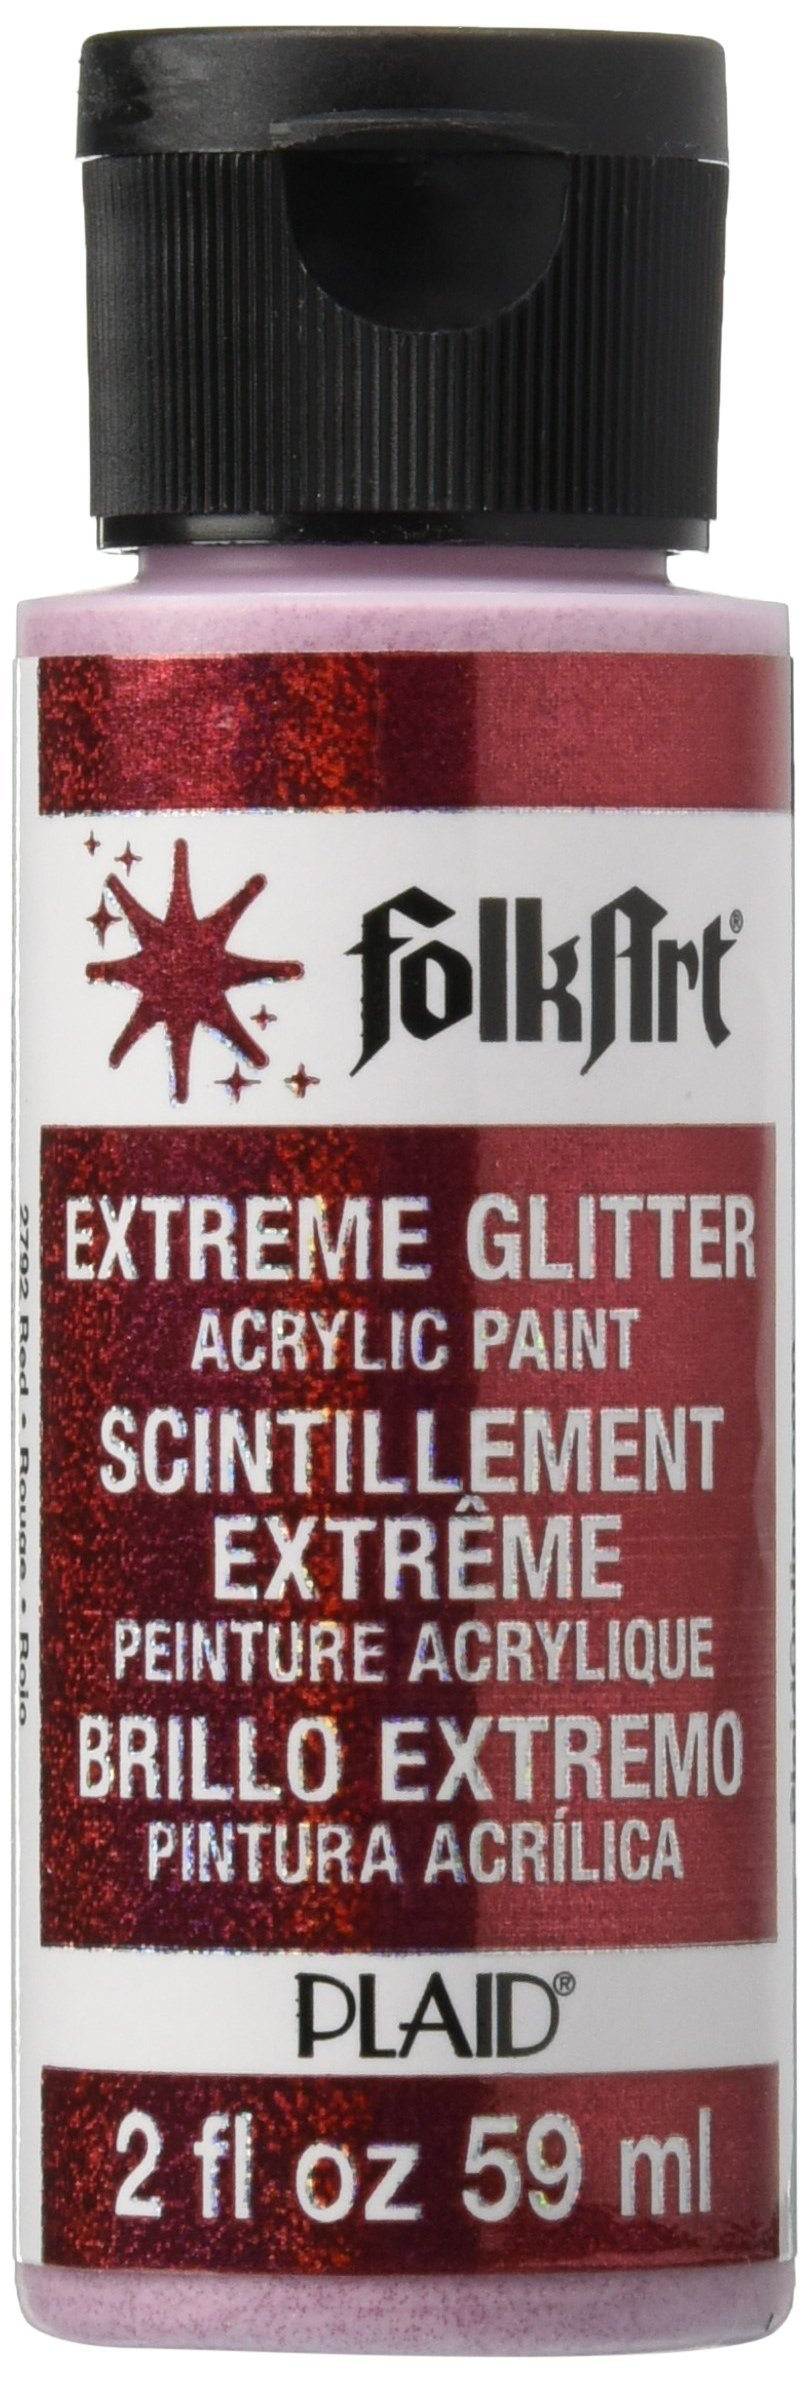 FolkArt Extreme Glitter Acrylic Paint in Assorted Colors (2 oz), 2792, Red